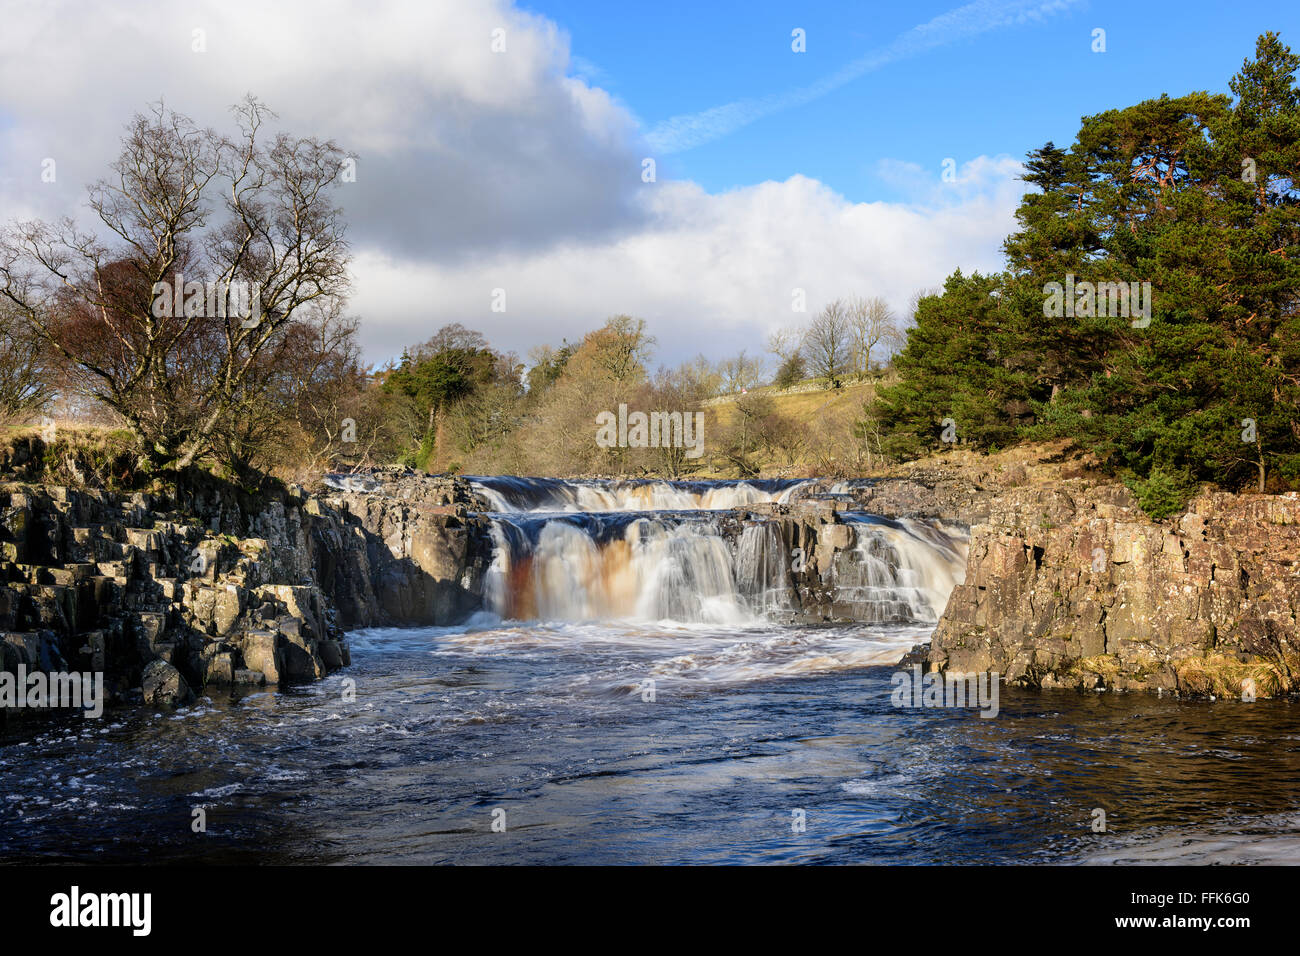 Low Force Waterfall River Tees Teesdale - Stock Image